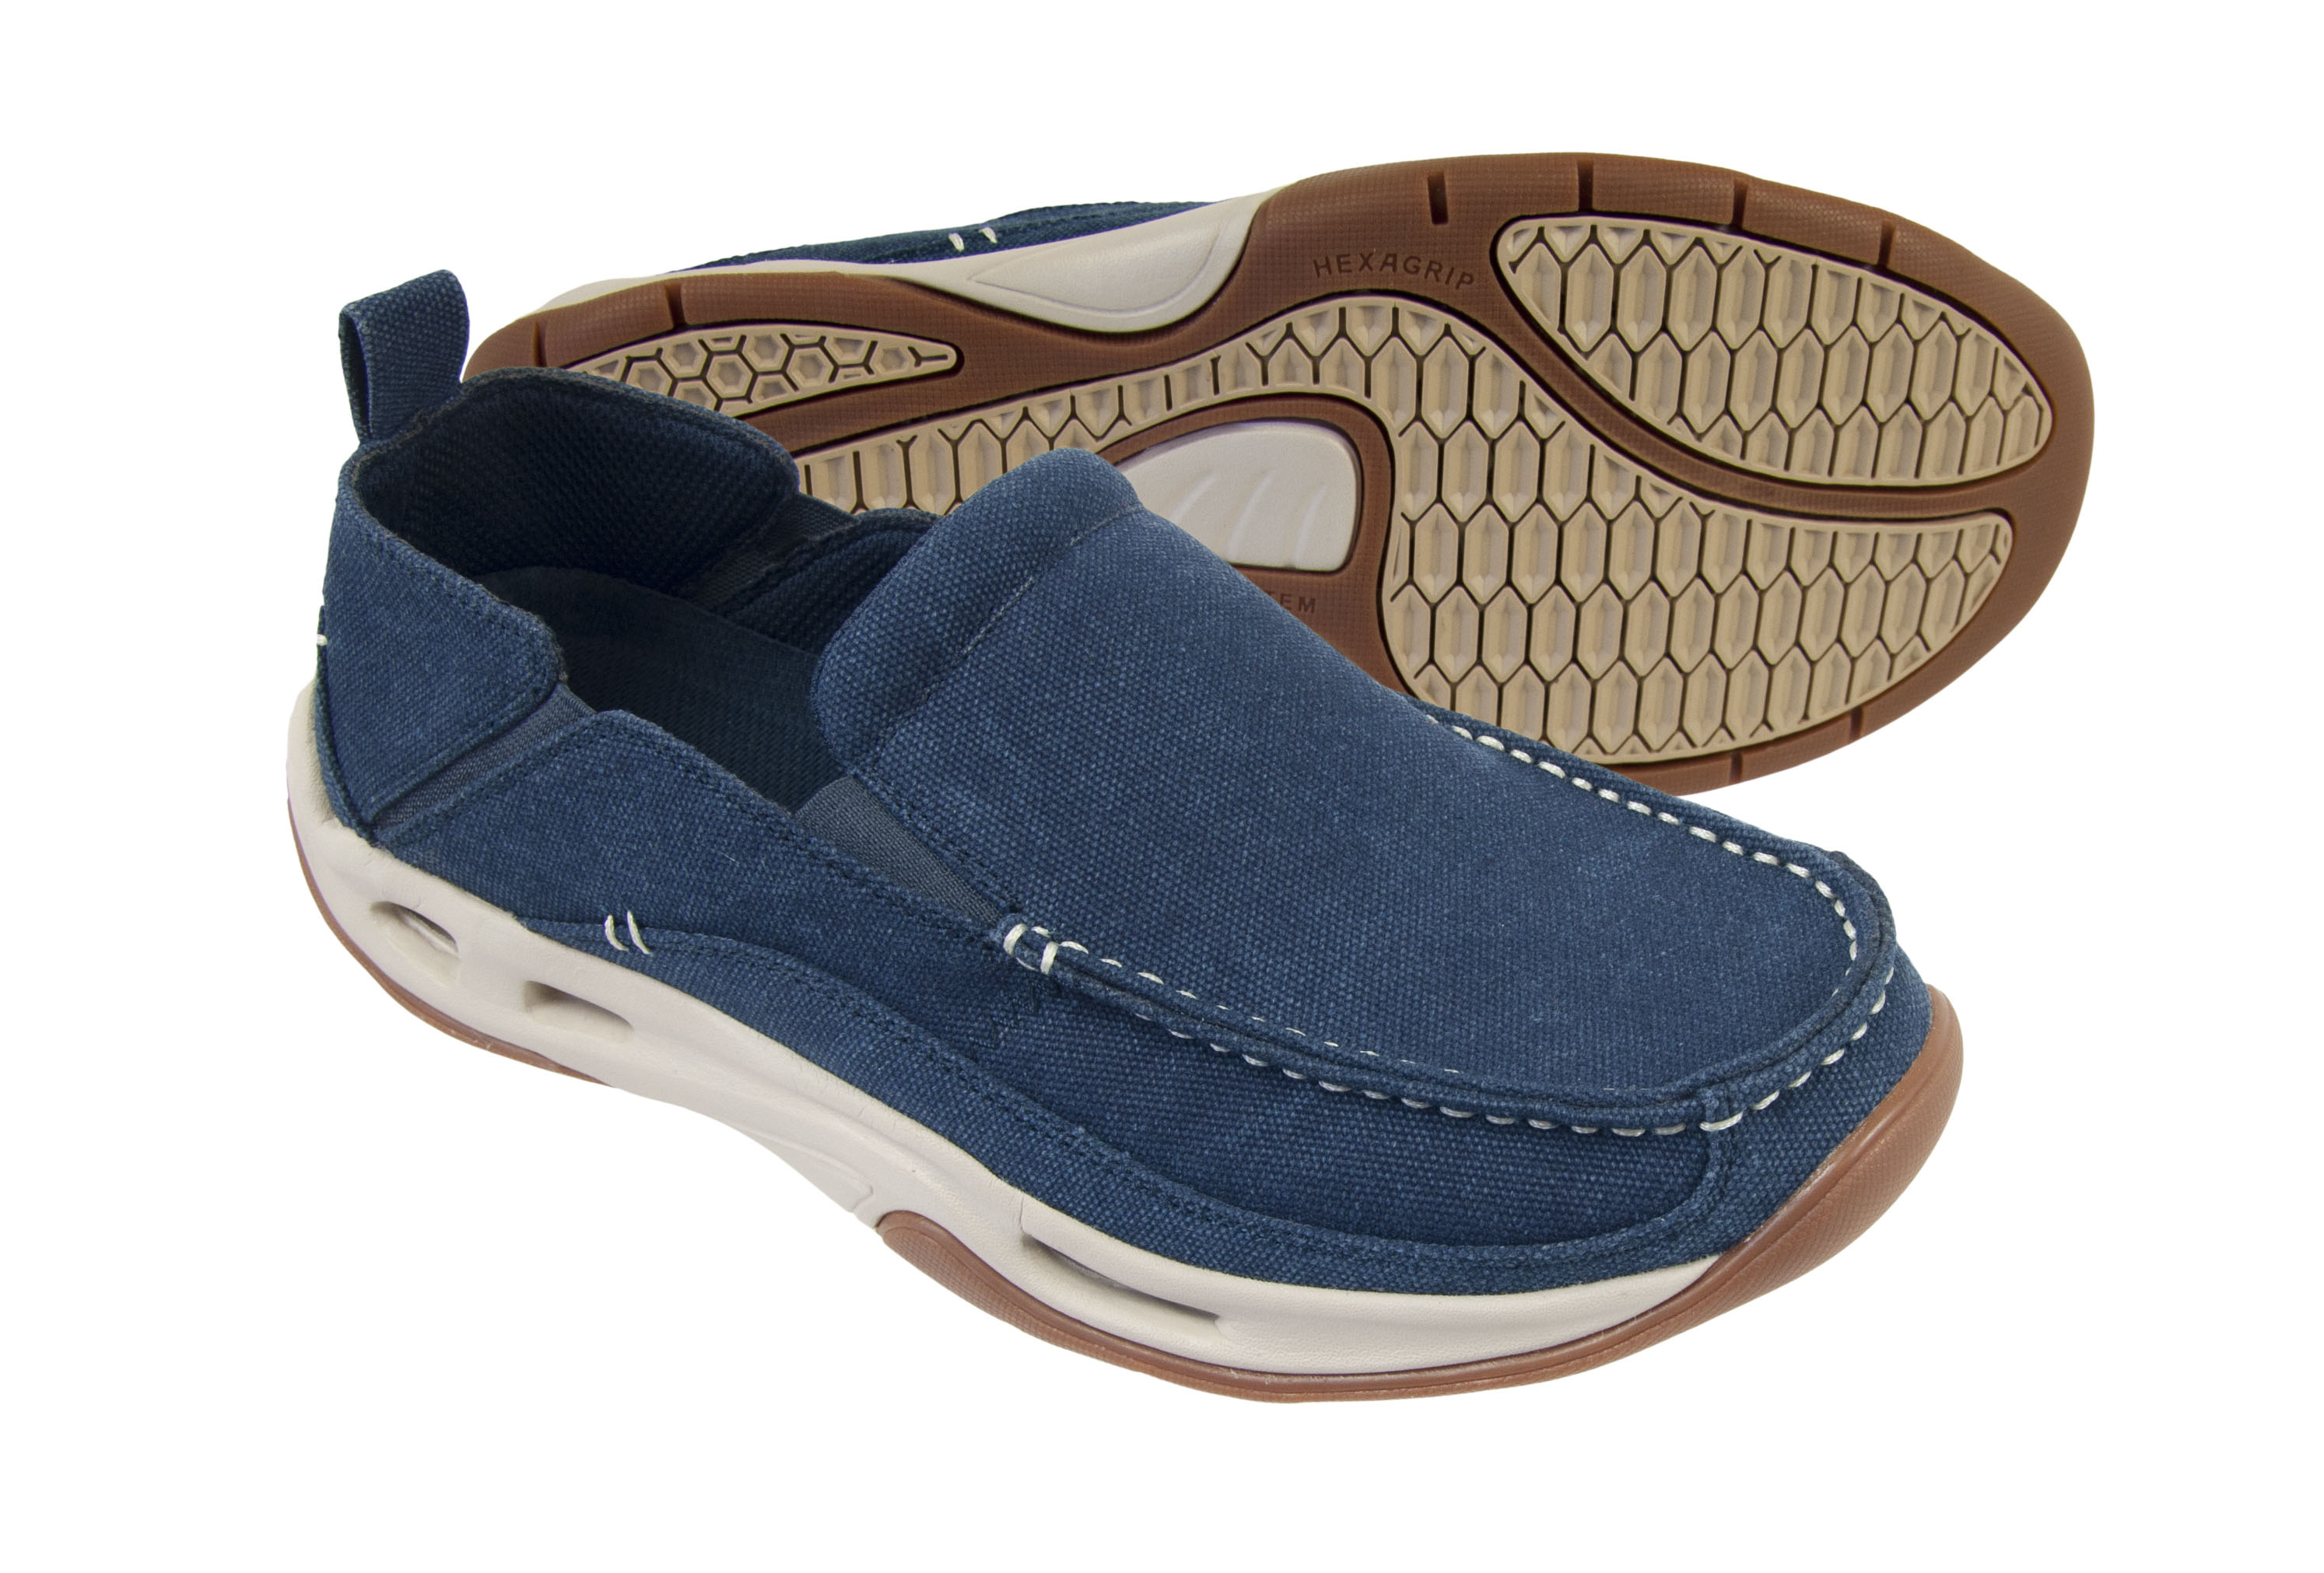 Rugged Shark's Shoes for Water Recreation